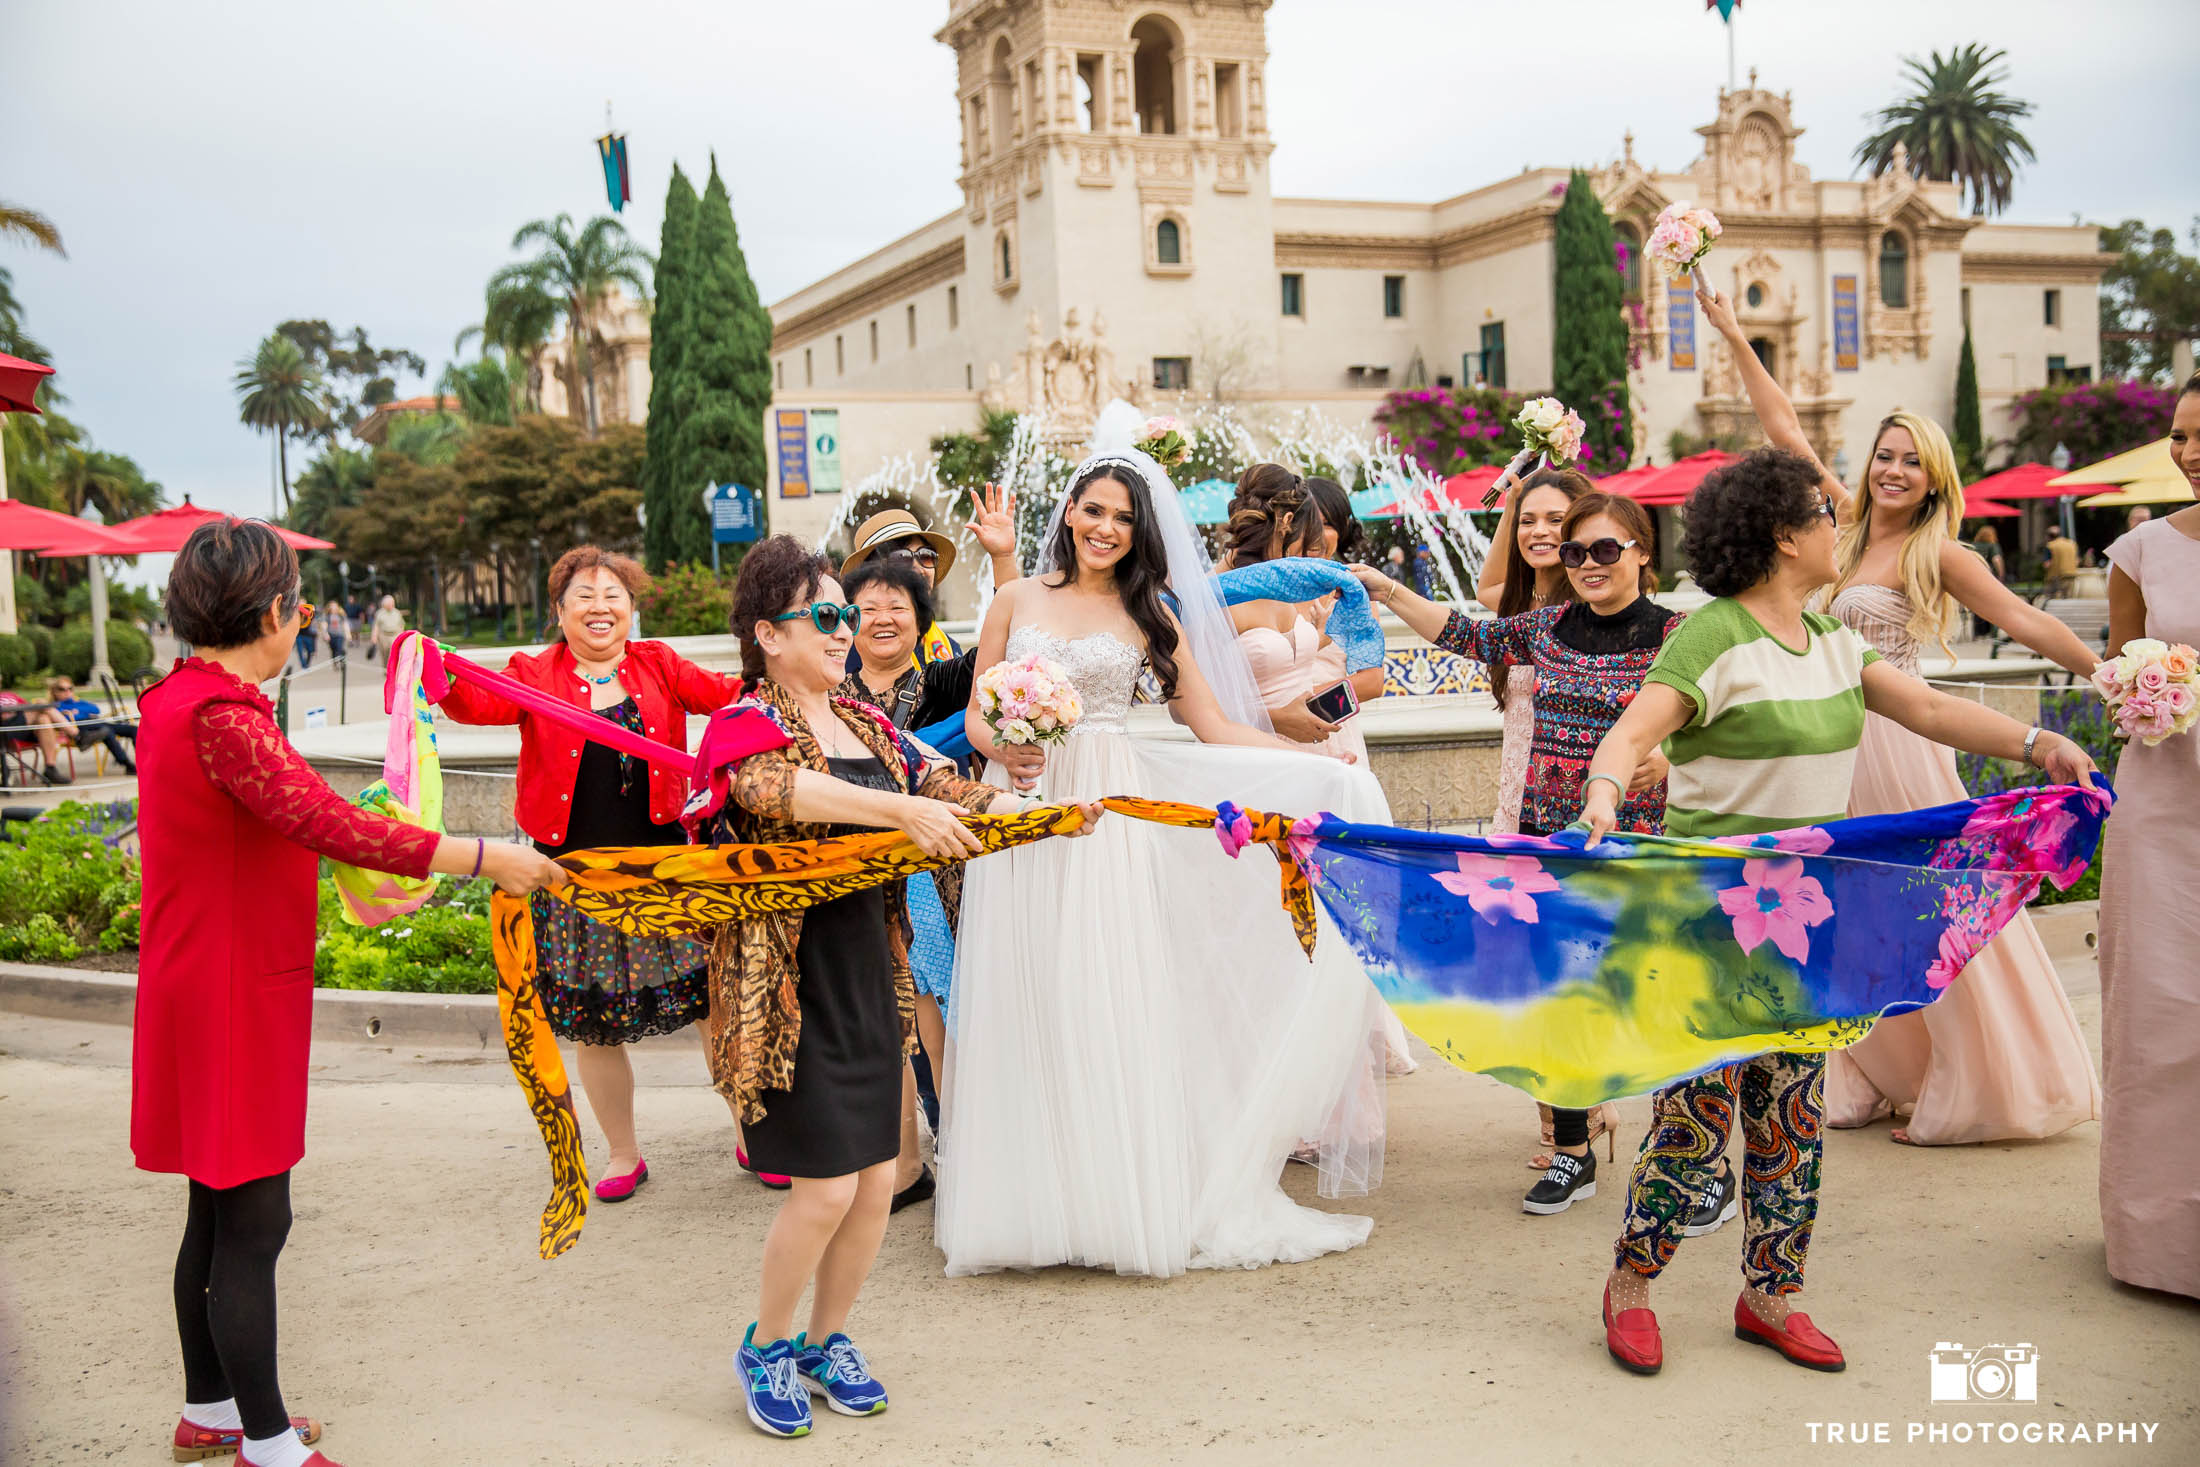 Street performers dance with scarves around Bride after wedding ceremony